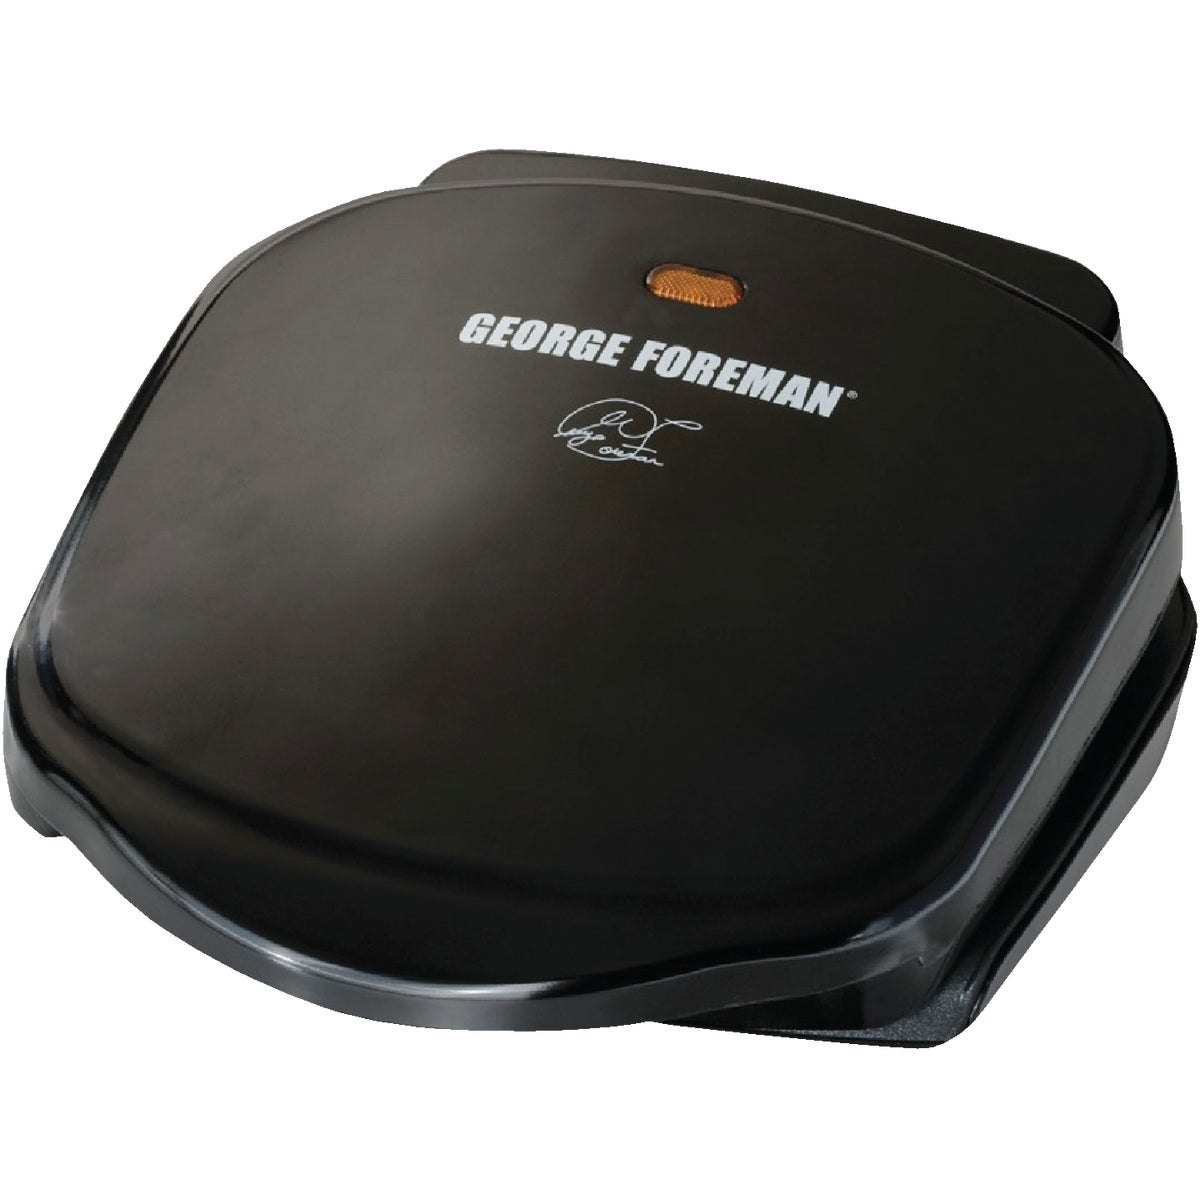 2 SERVING FOREMAN GRILL